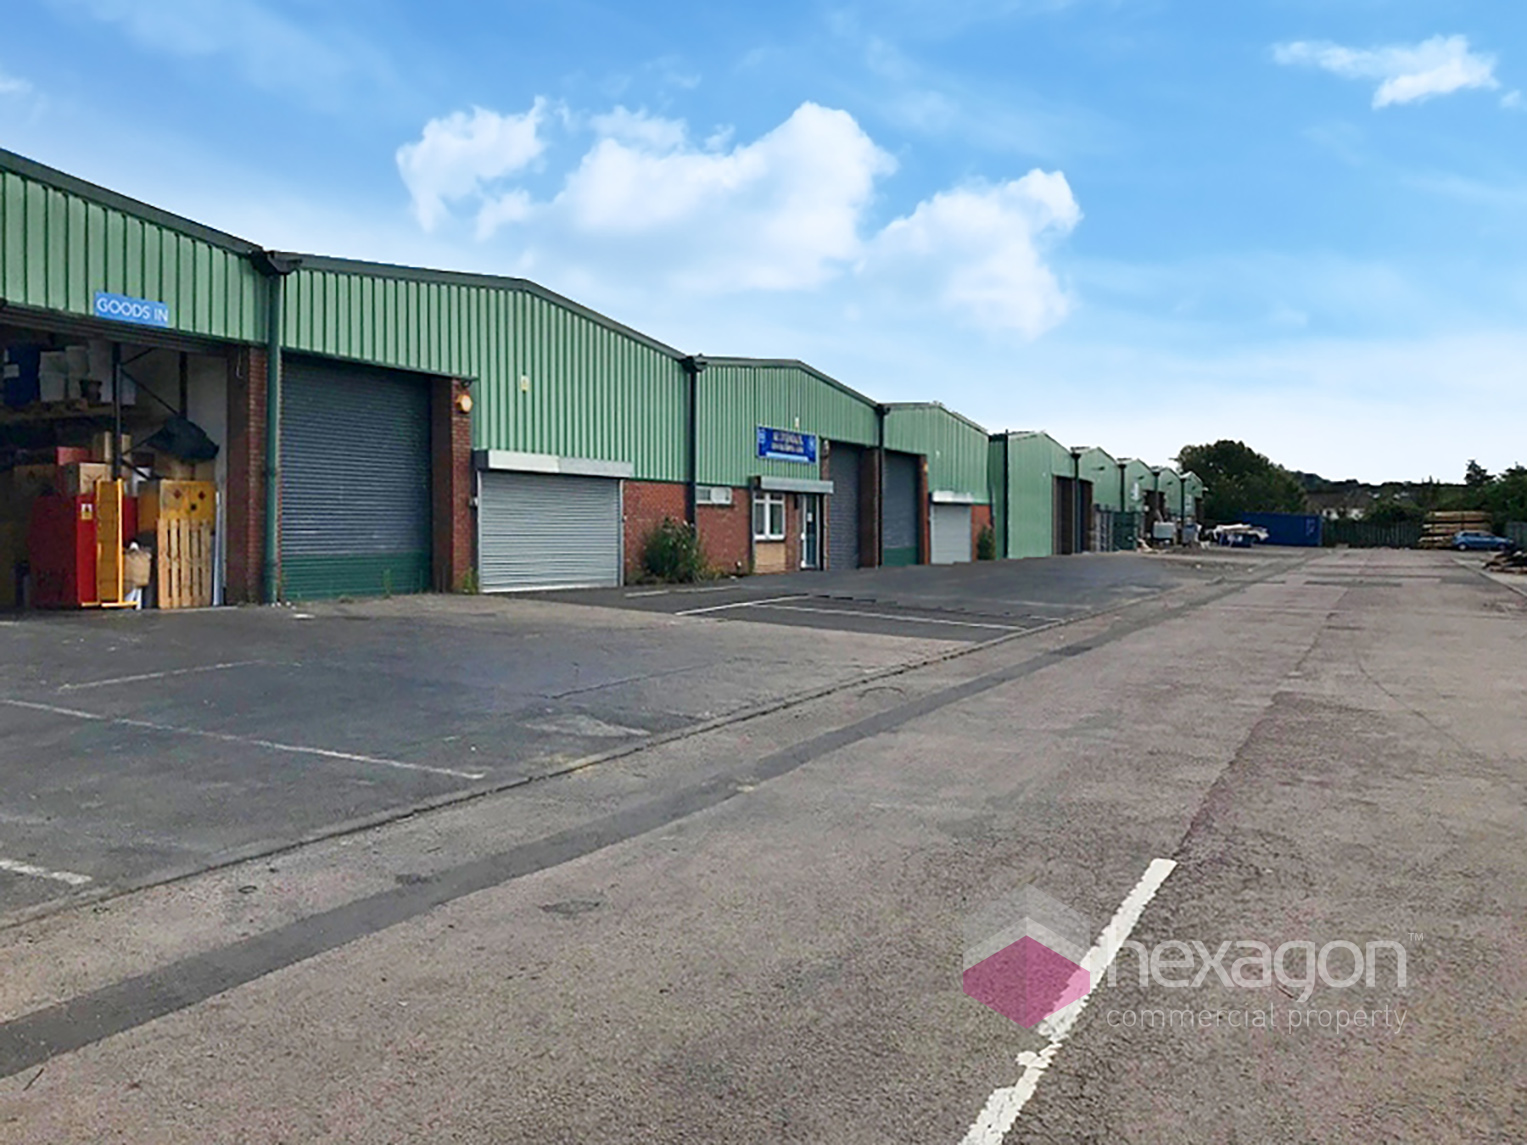 0 bed Light Industrial for rent in Halesowen. From Hexagon Commercial Property